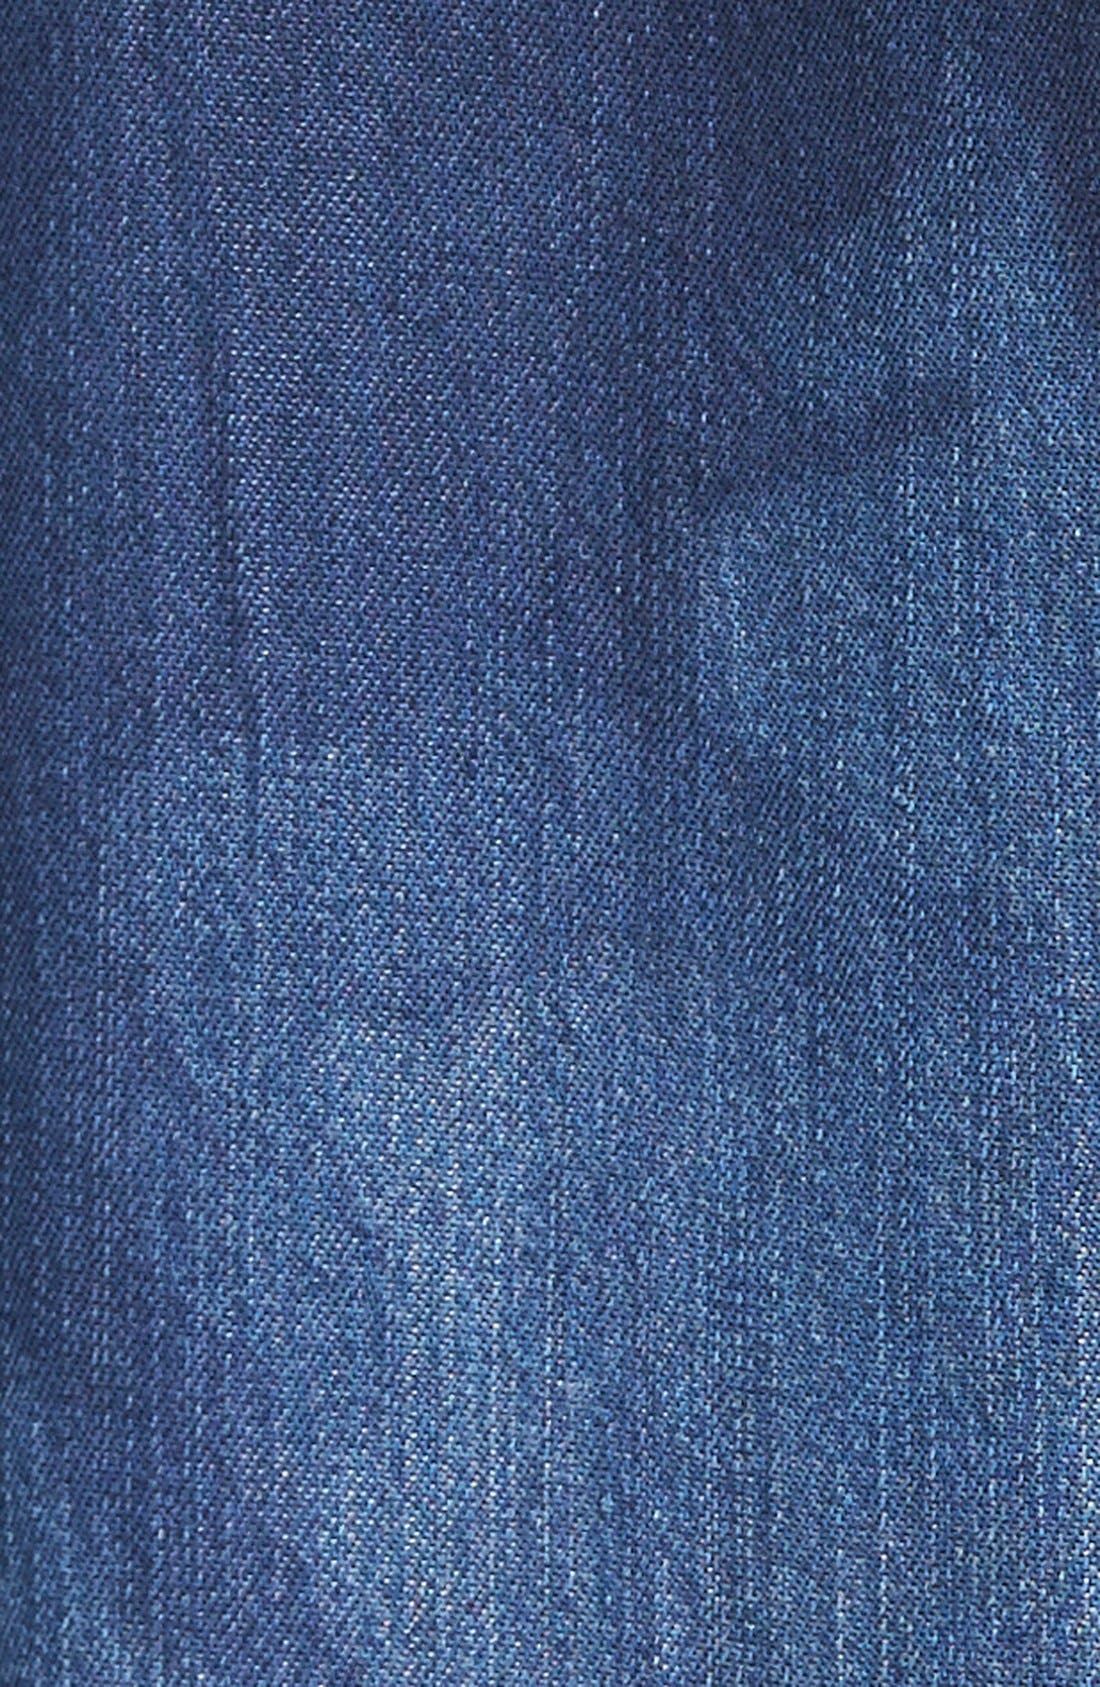 Alternate Image 3  - Rails 'Marlow' Ombré Chambray Shirt